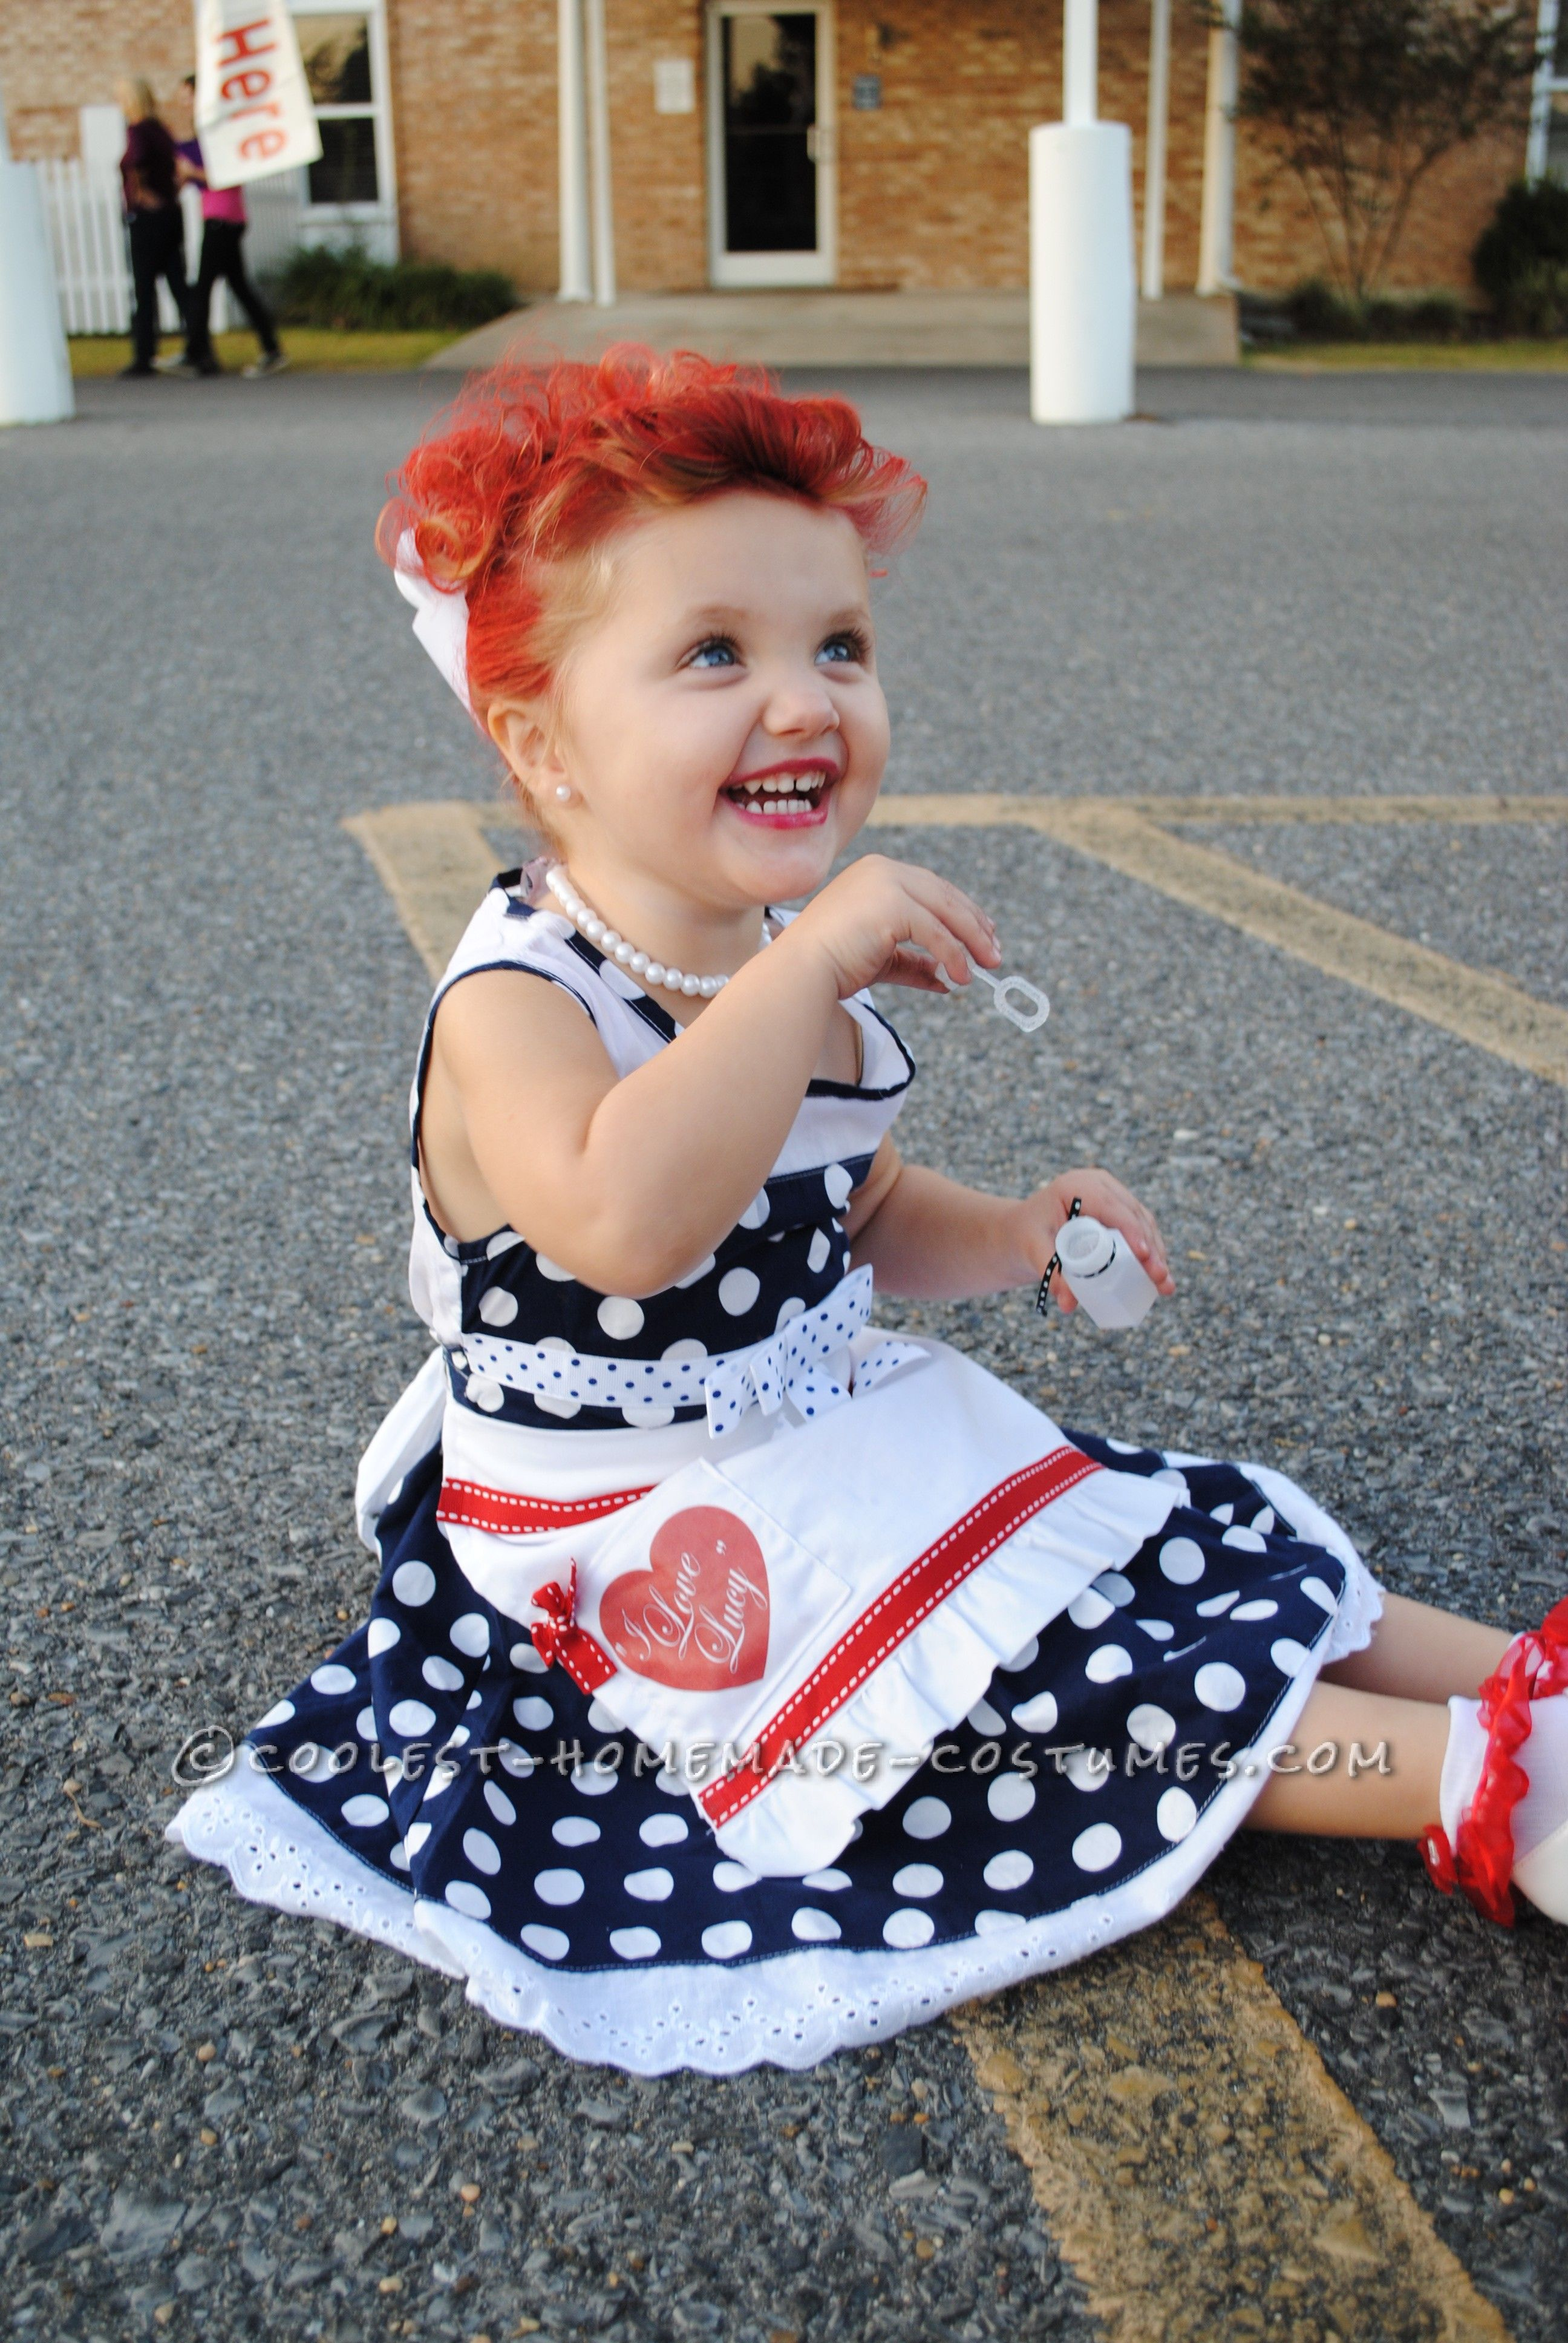 Baby Boy And Girl Halloween Costume Ideas.Adorable I Love Lucy Homemade Costume For A Toddler